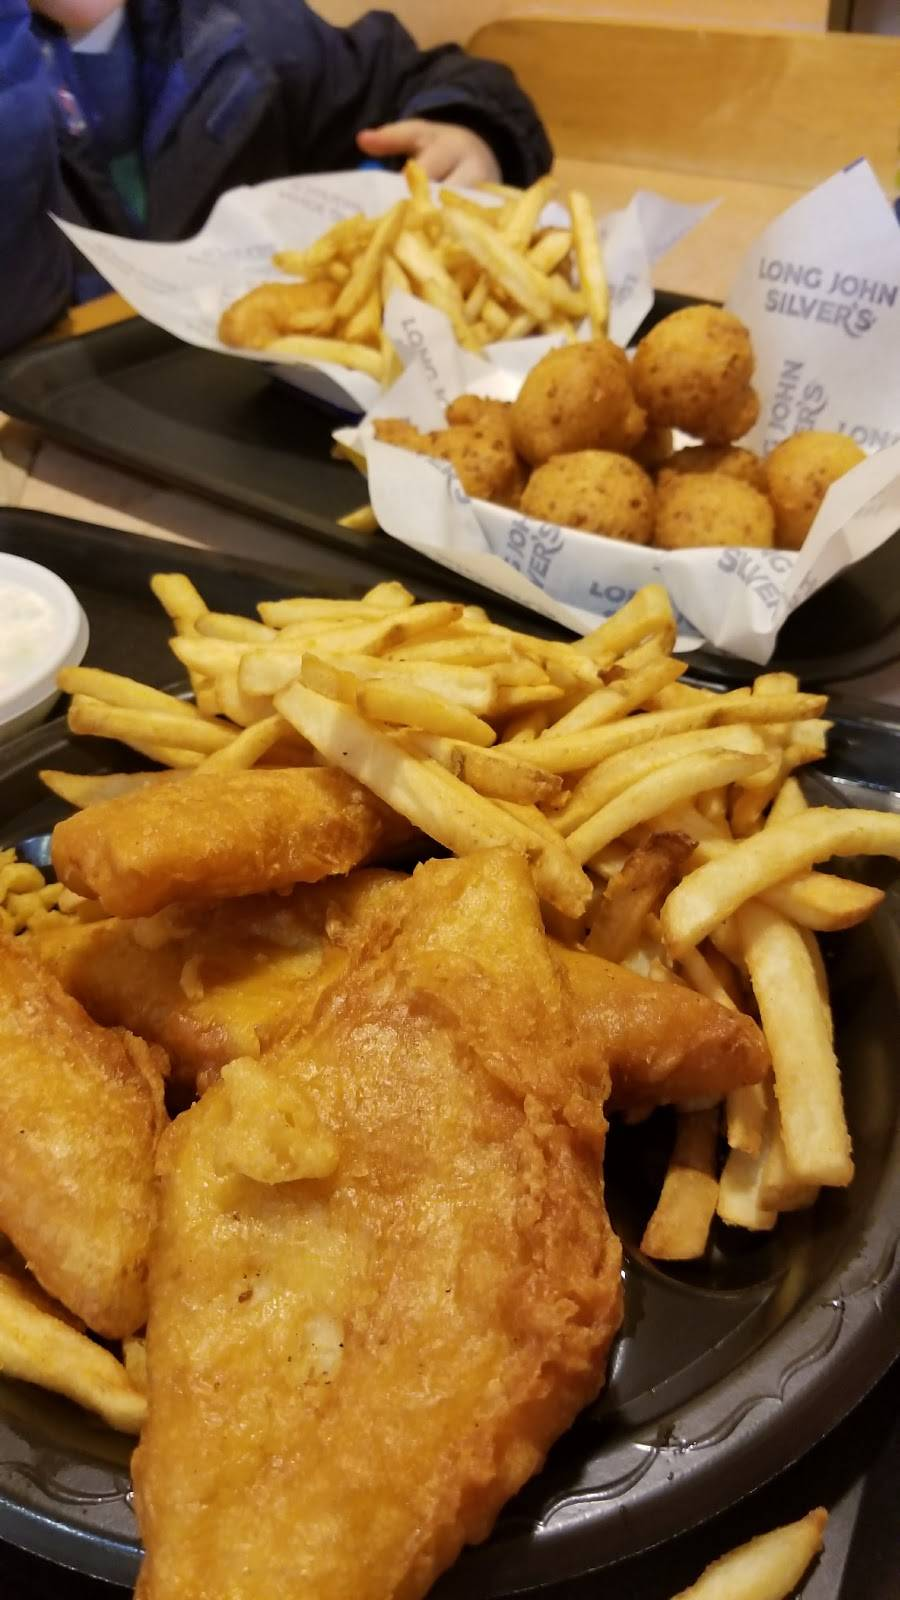 Long John Silvers   restaurant   6622 W Fullerton Ave, Chicago, IL 60707, USA   7732374661 OR +1 773-237-4661